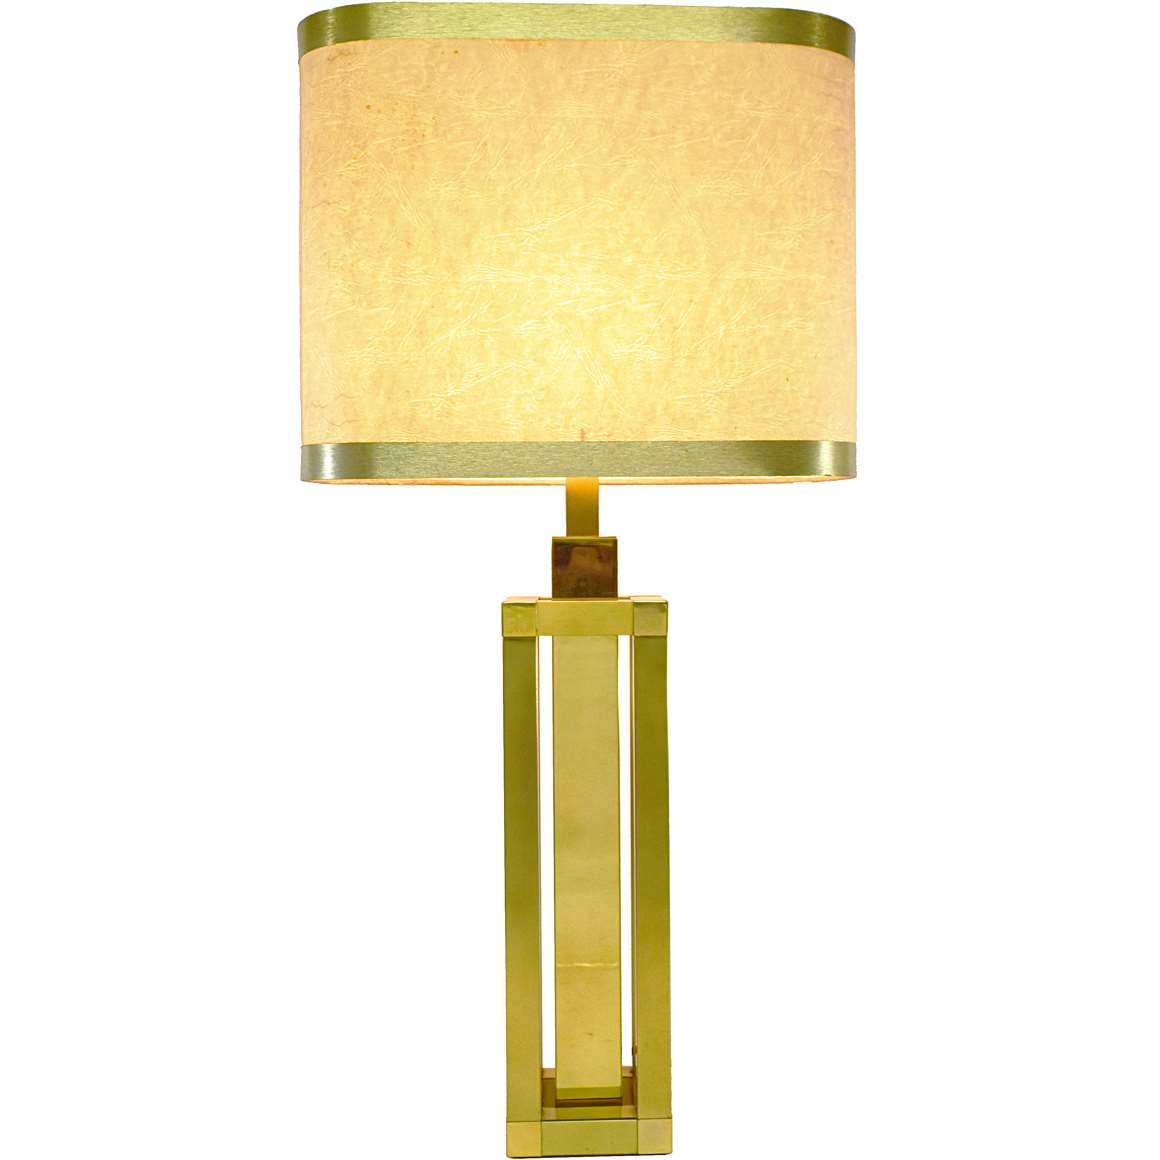 Romeo Rega Square Tubes Table Lamp